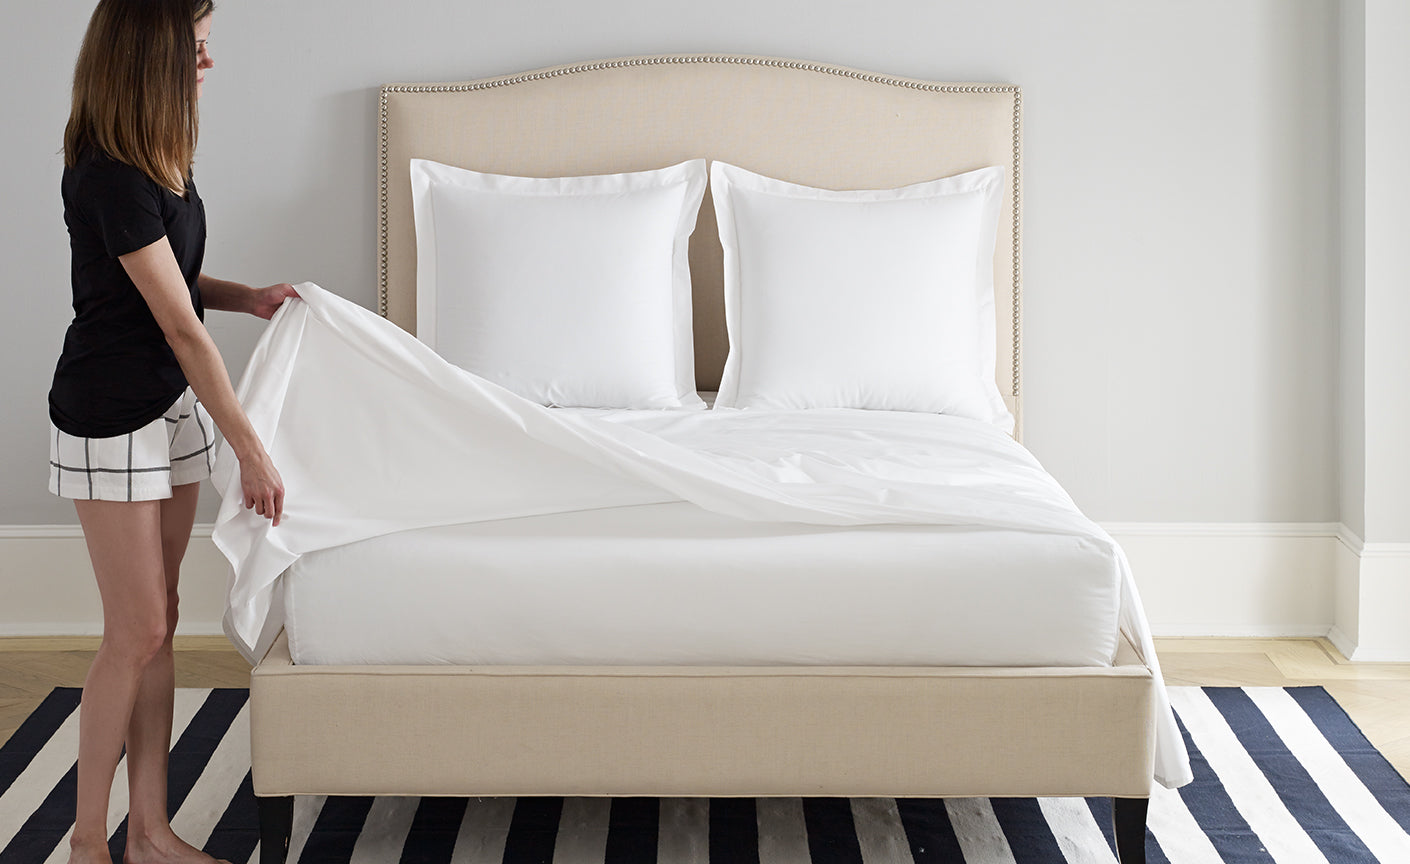 Superior The Boll U0026 Branch Flat Sheet, Also Called The Top Sheet, Is Placed On Top  Of The Fitted Sheet, And In Between Yourself And Your Blanket Or Duvet  Cover.